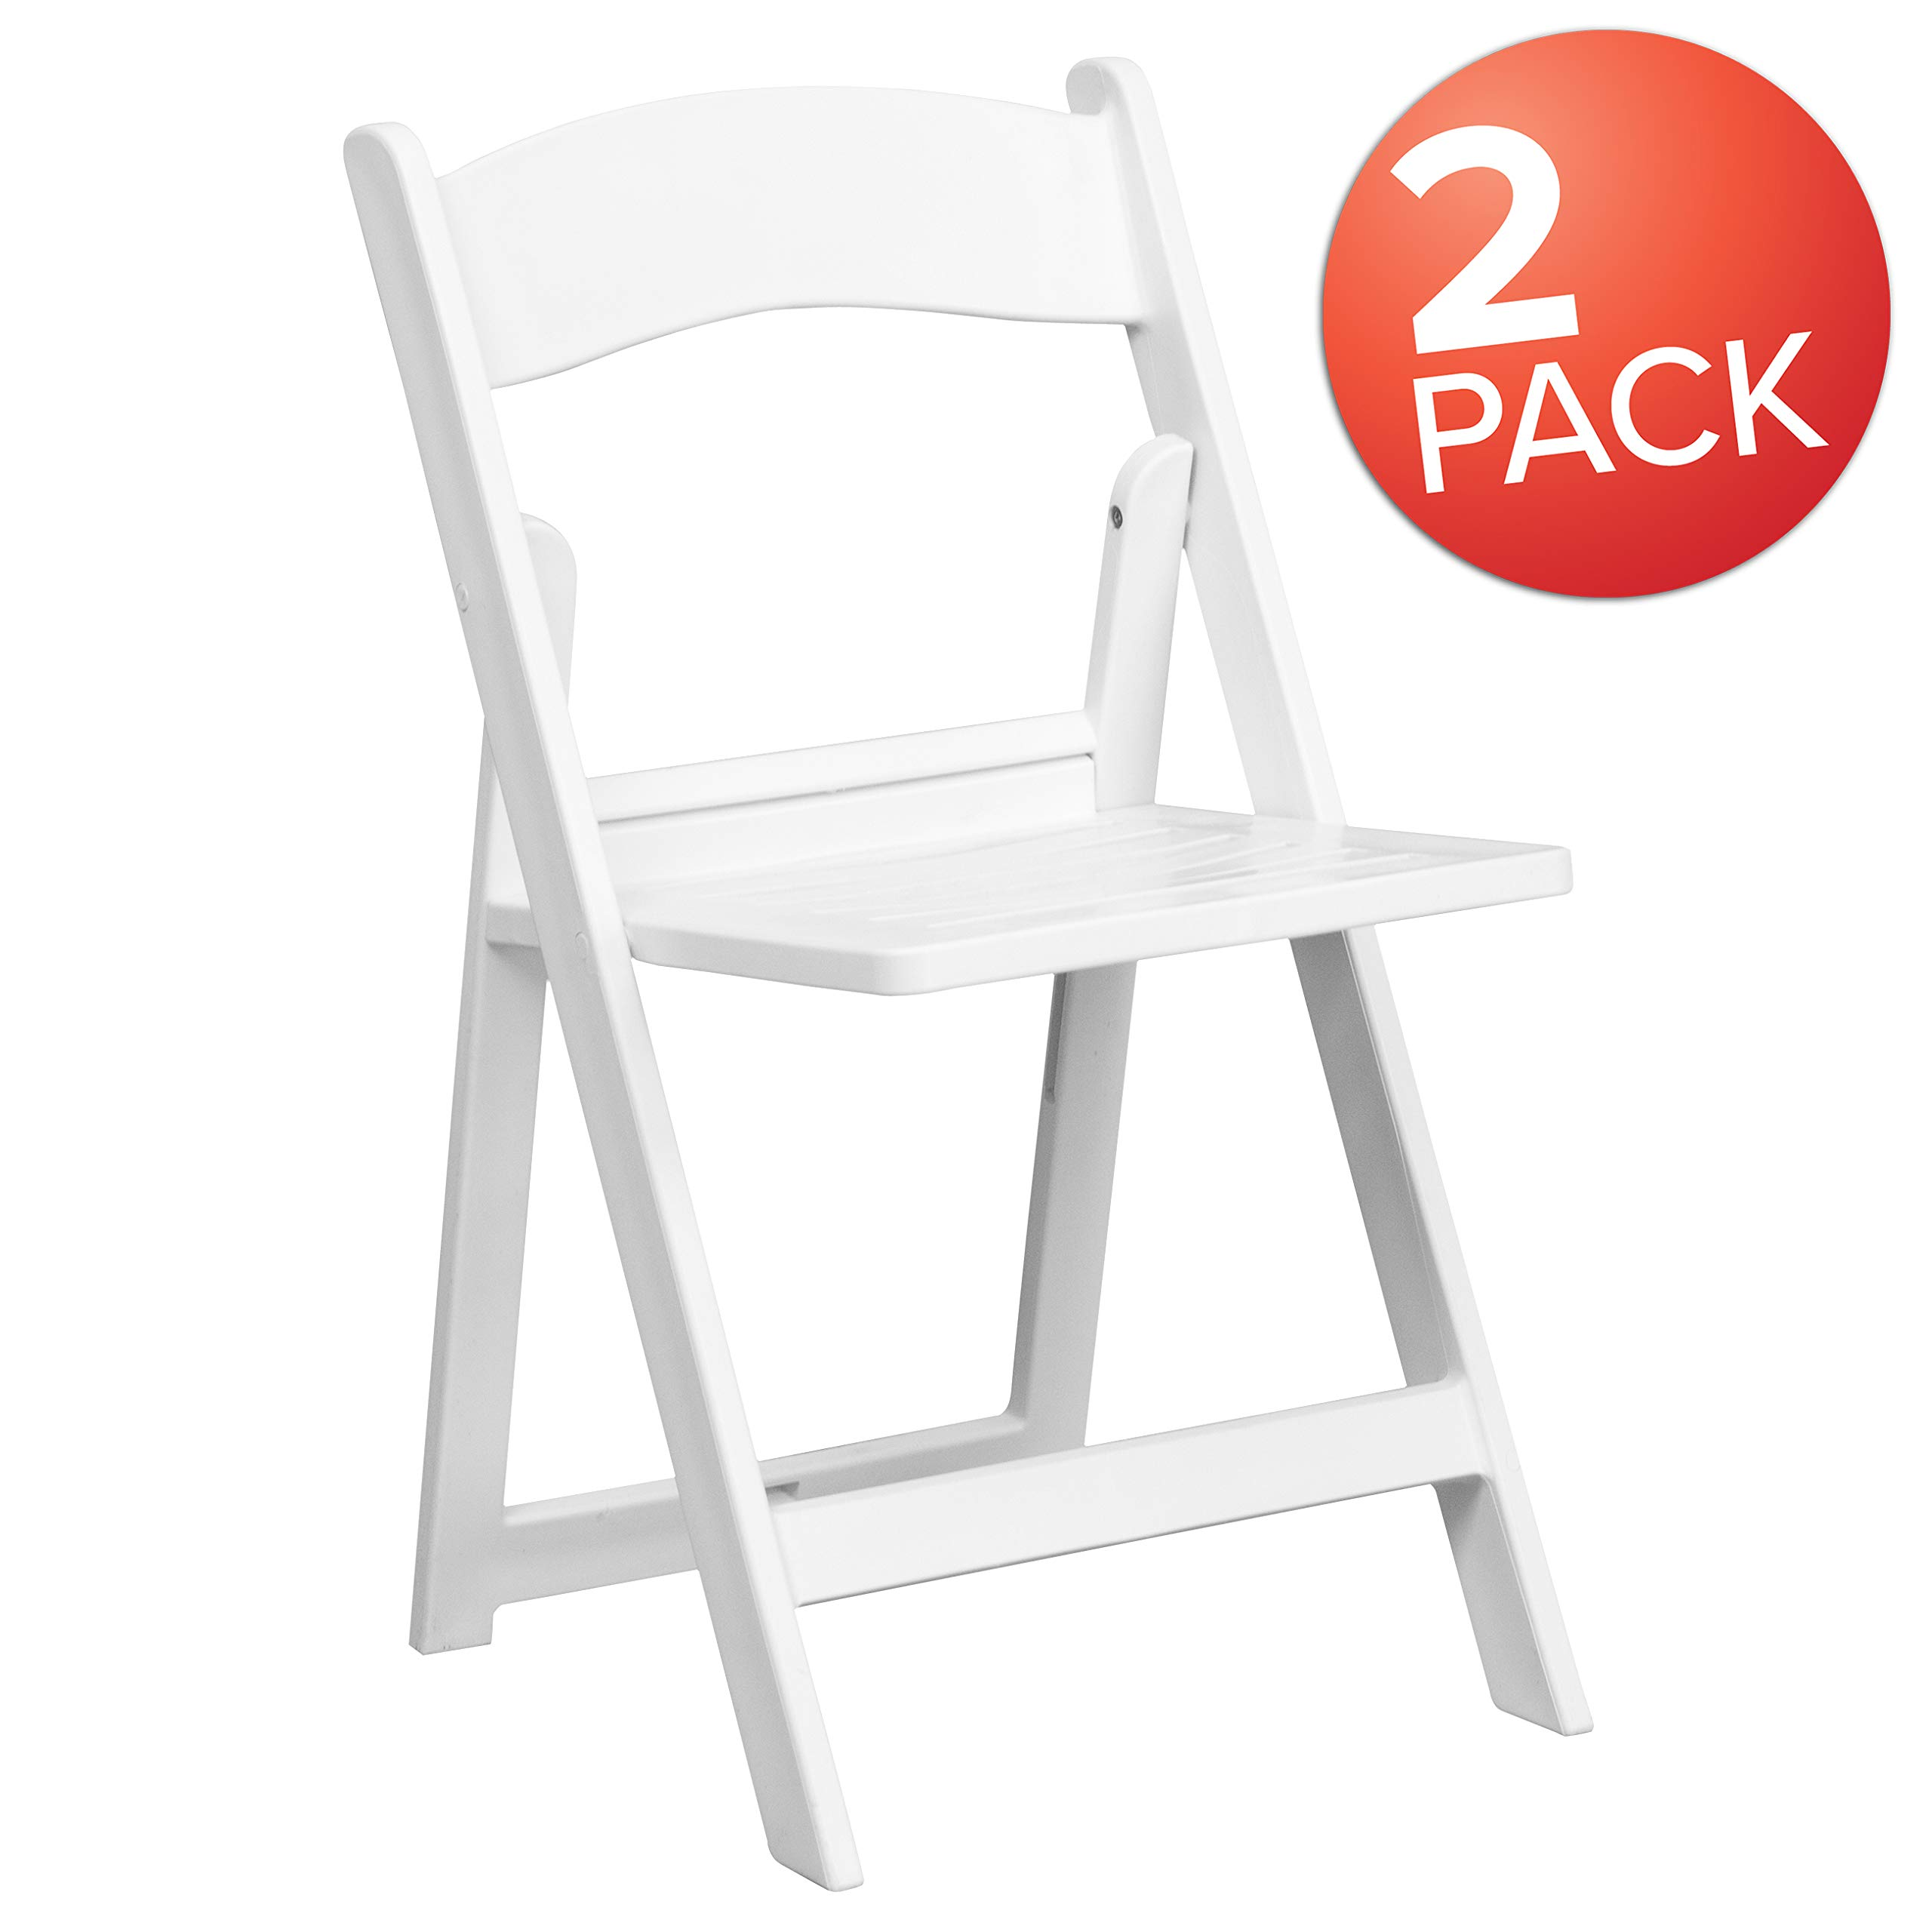 Flash Furniture 2 Pk. HERCULES Series 1000 lb. Capacity White Resin Folding Chair with Slatted Seat by Flash Furniture